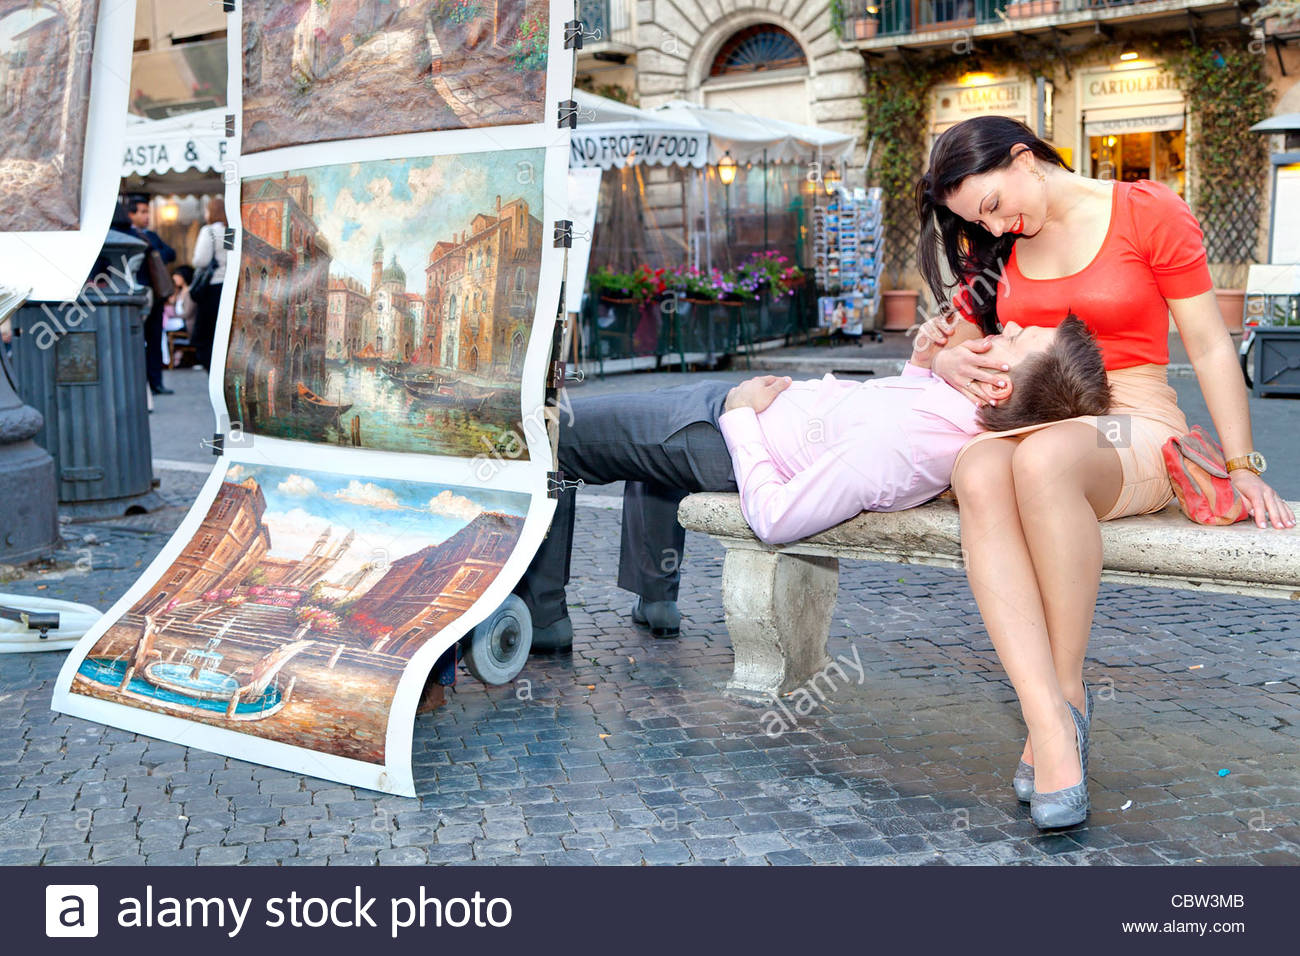 Couple sitting in Piazza Navona Rome Italy - Stock Image